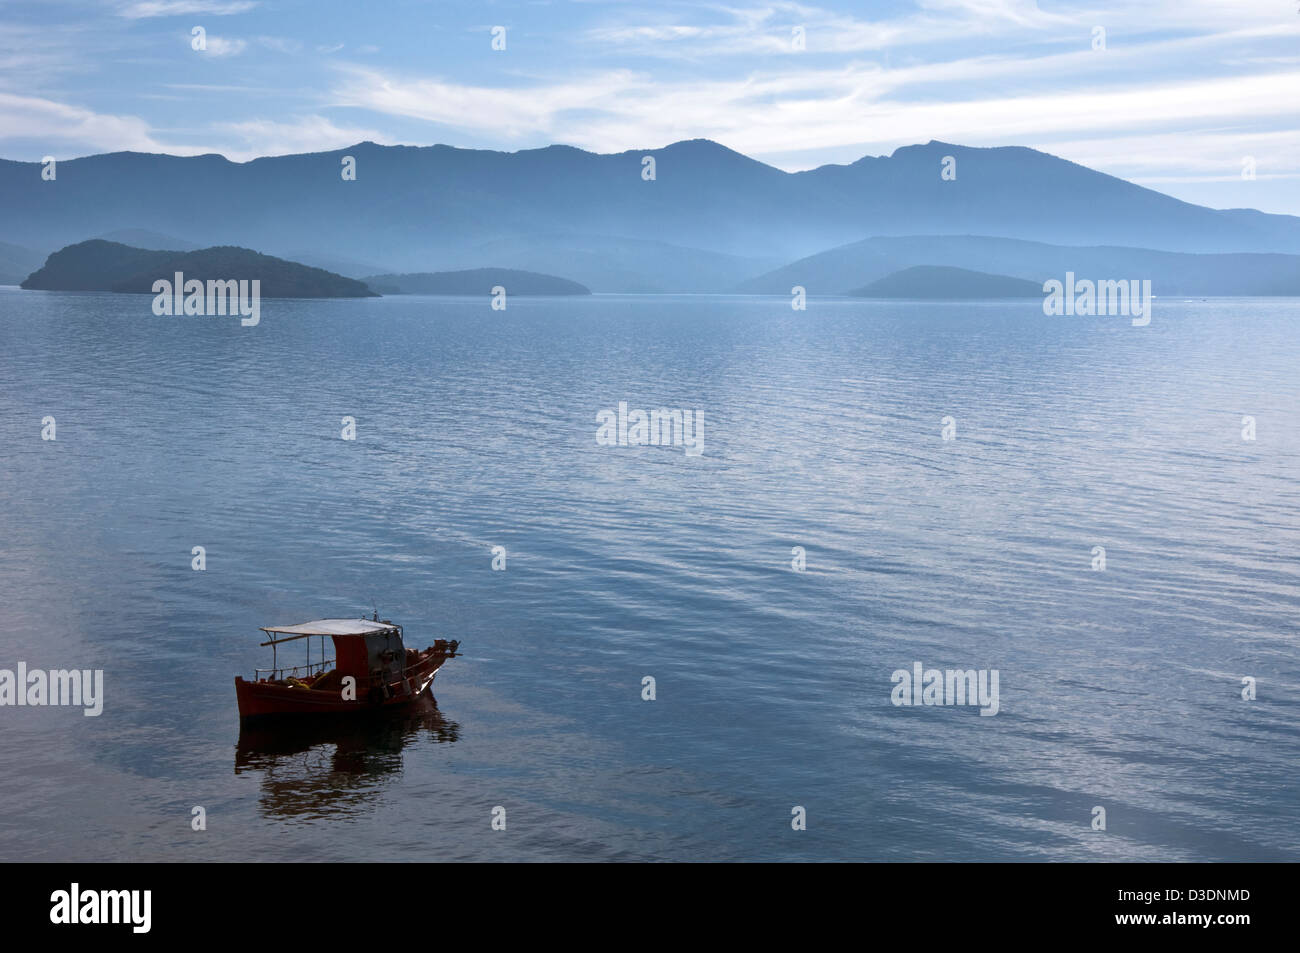 Fishing boat on the Pagasitic Gulf - Stock Image